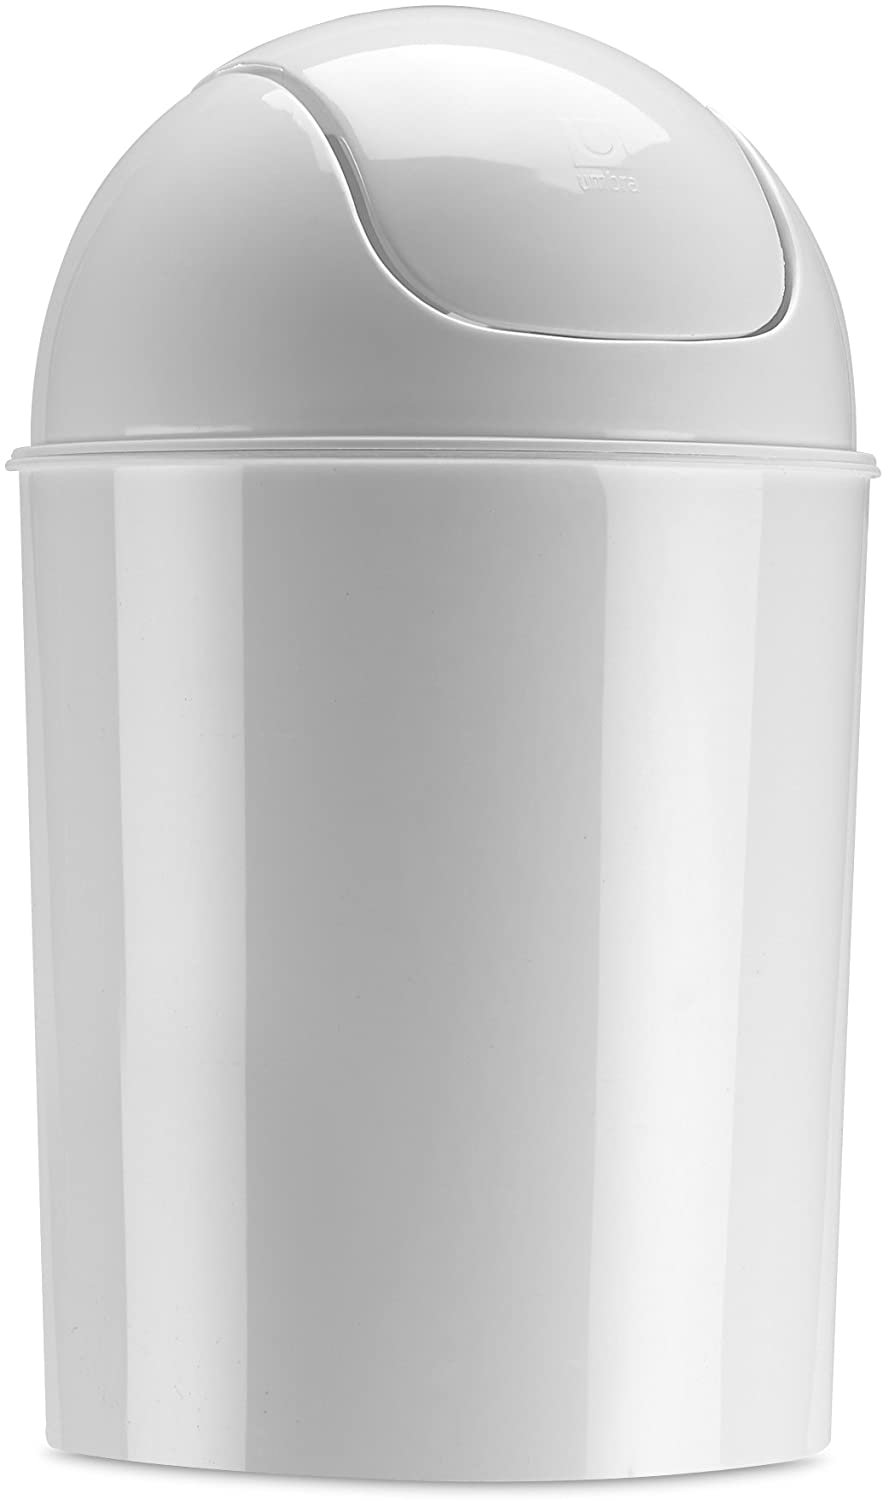 Umbra Mini Waste Can 1-1/2 Gallon with Swing Lid, White